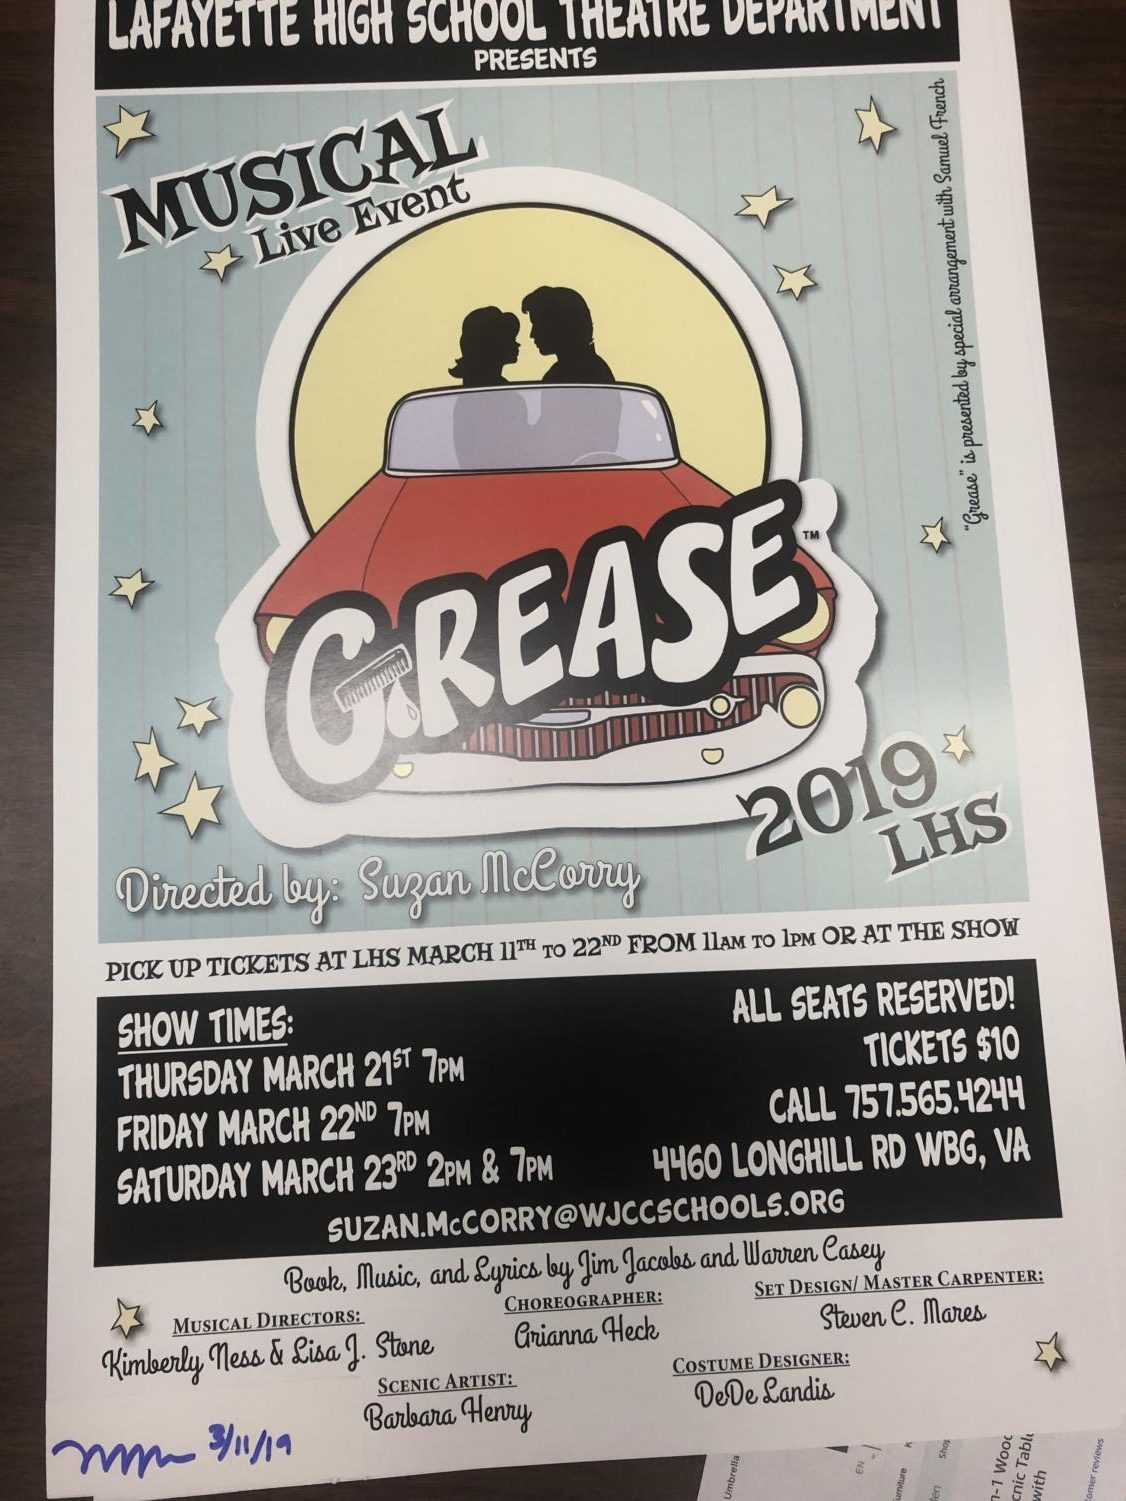 The LHS musical will be performed on March 21st and 22nd and 7pm and March 23rd at 2pm and 7pm.